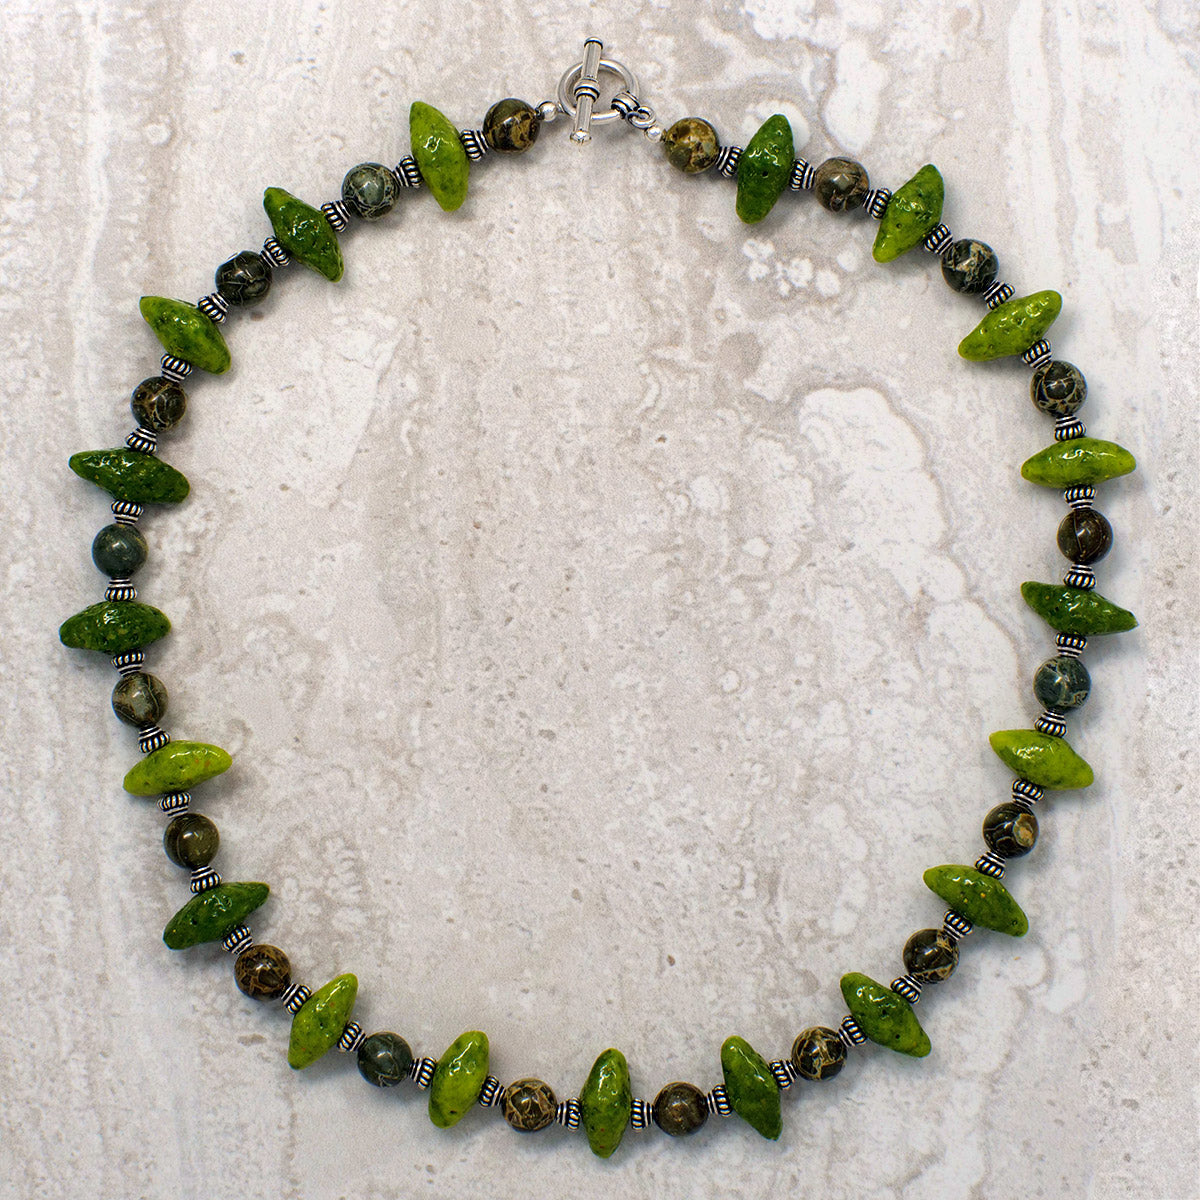 Women's Necklace in Green Faience with Green Brecciated Jasper - Em Hotep Collection